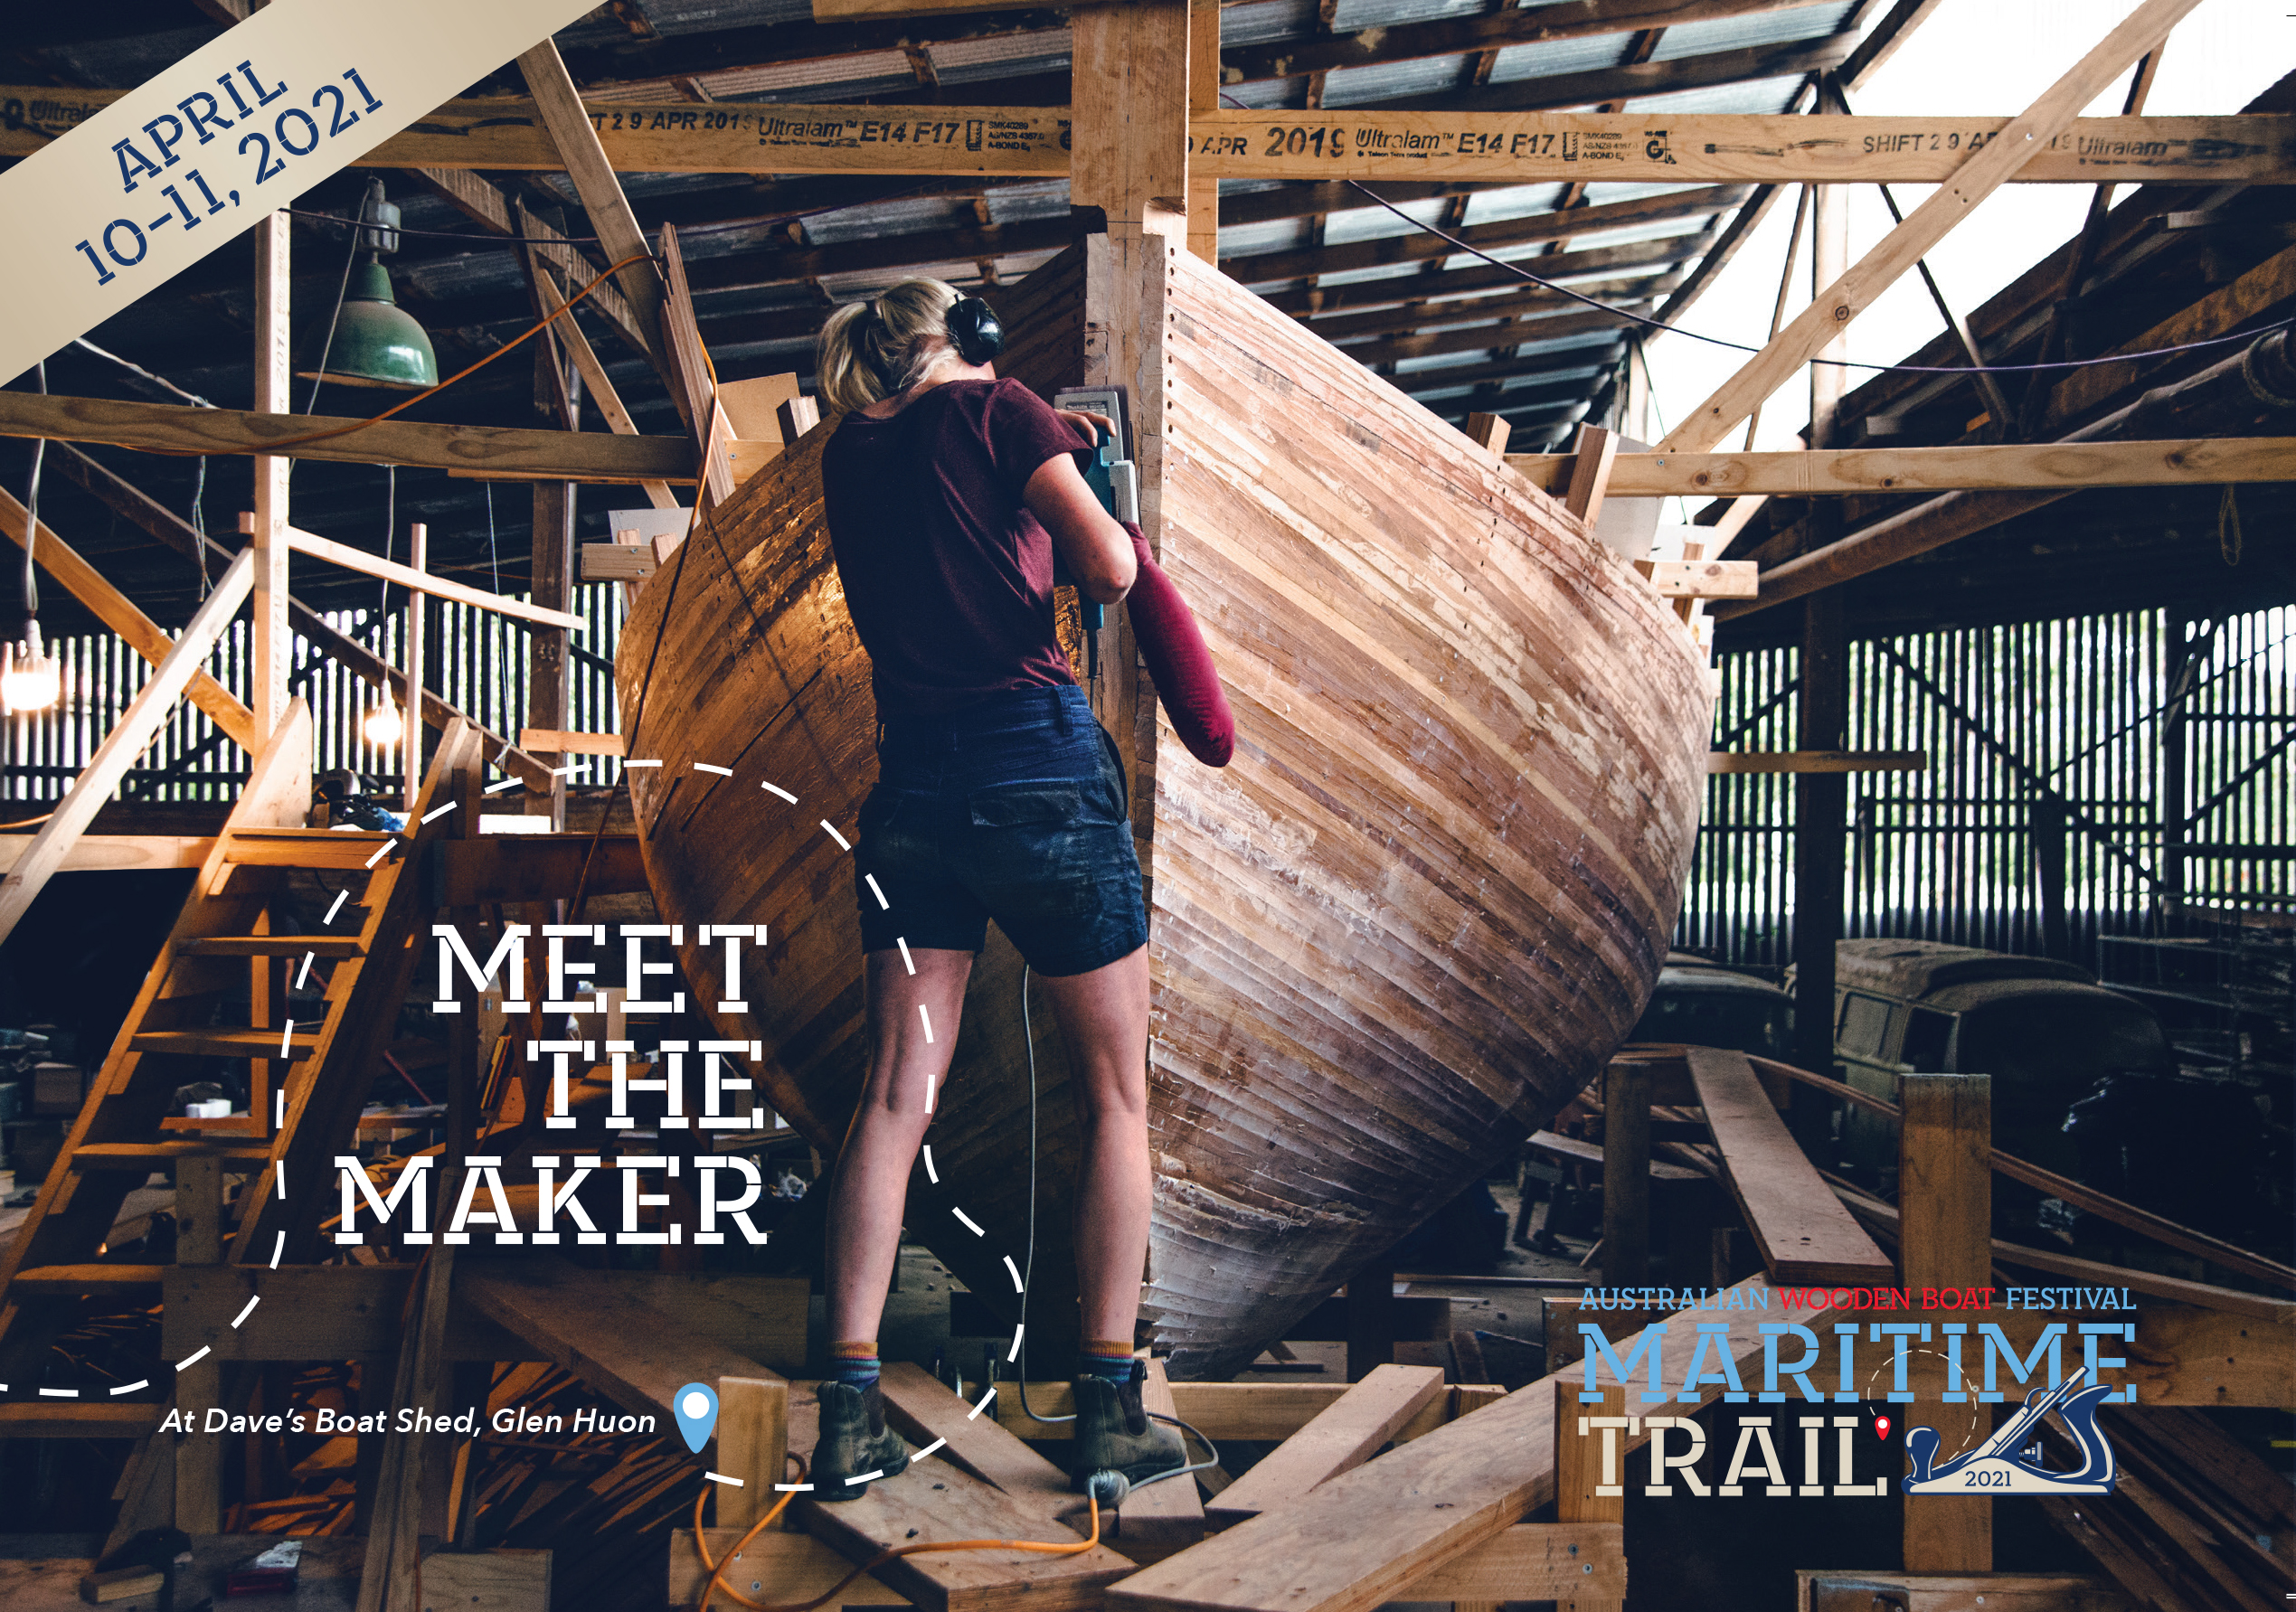 Maritime Trail in lieu of wooden boat fest sponsored by ATL